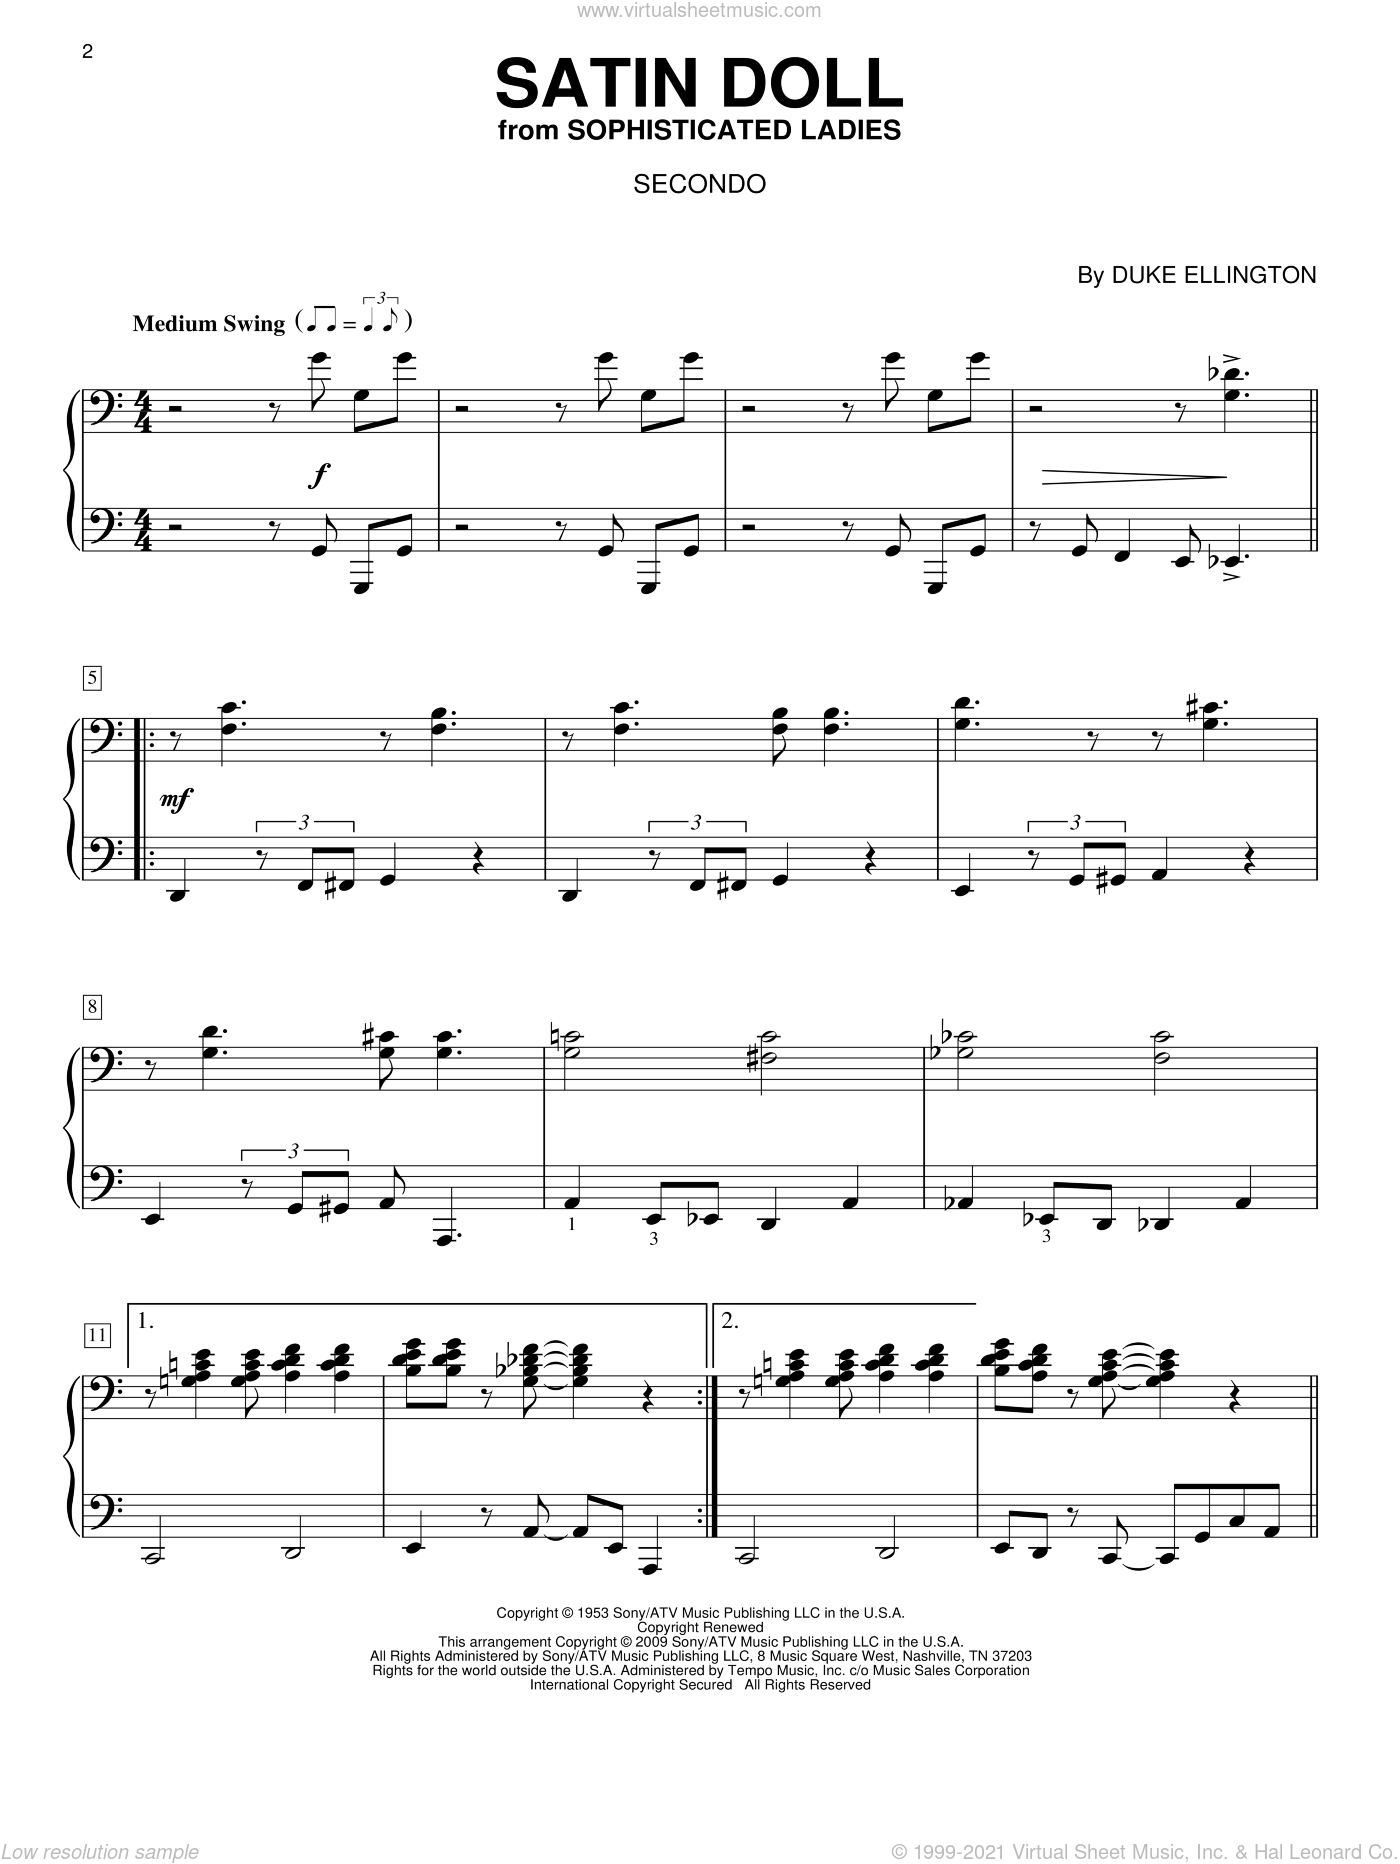 Satin Doll sheet music for piano four hands (duets) by Duke Ellington, Billy Strayhorn and Johnny Mercer. Score Image Preview.